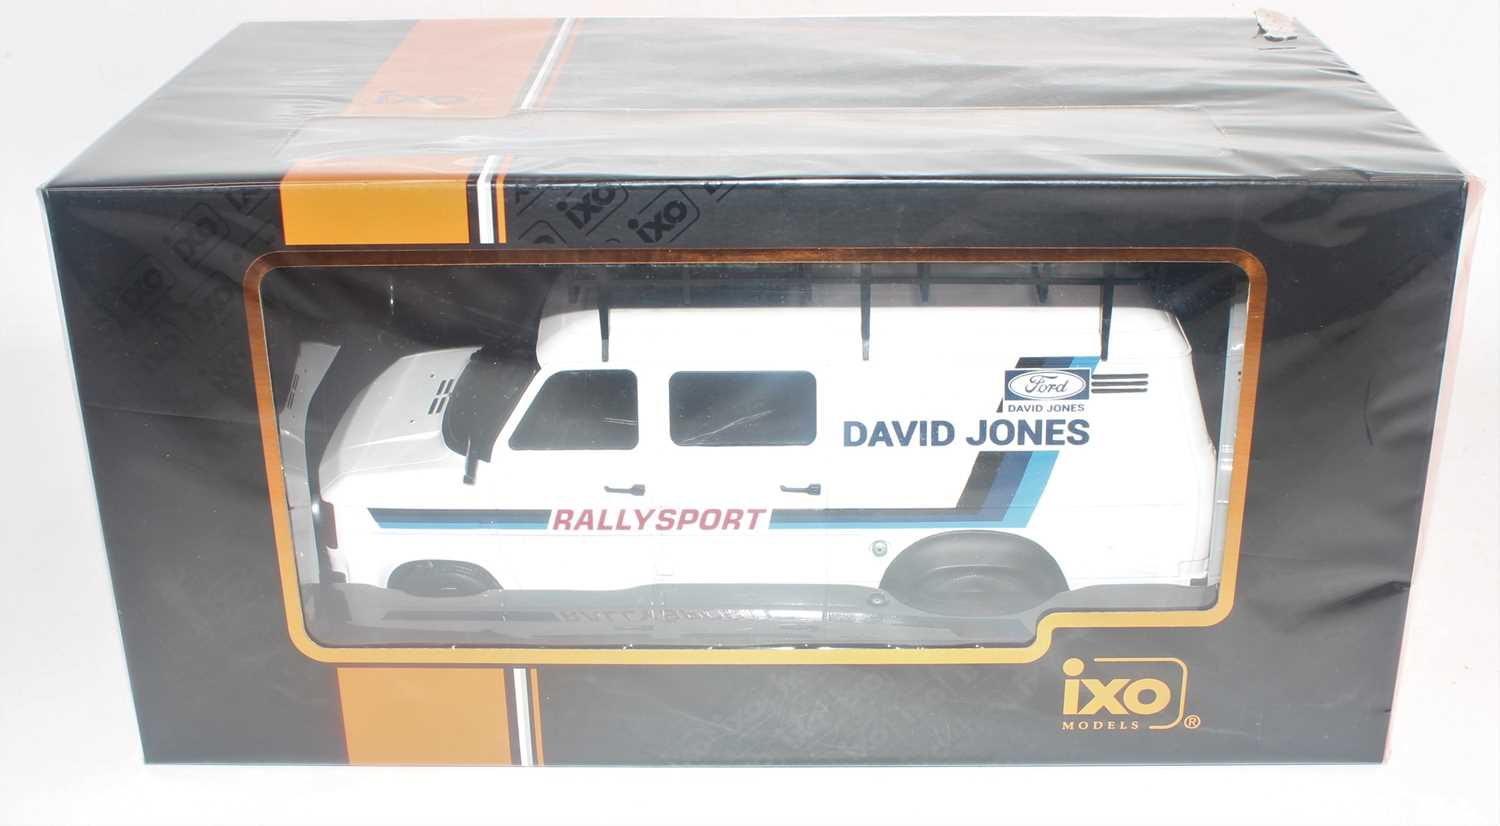 An Ixo Models, model No.18RMC033XE 1/18 scale model of a Rally Assistance 1979 Ford Transit Mk2 race